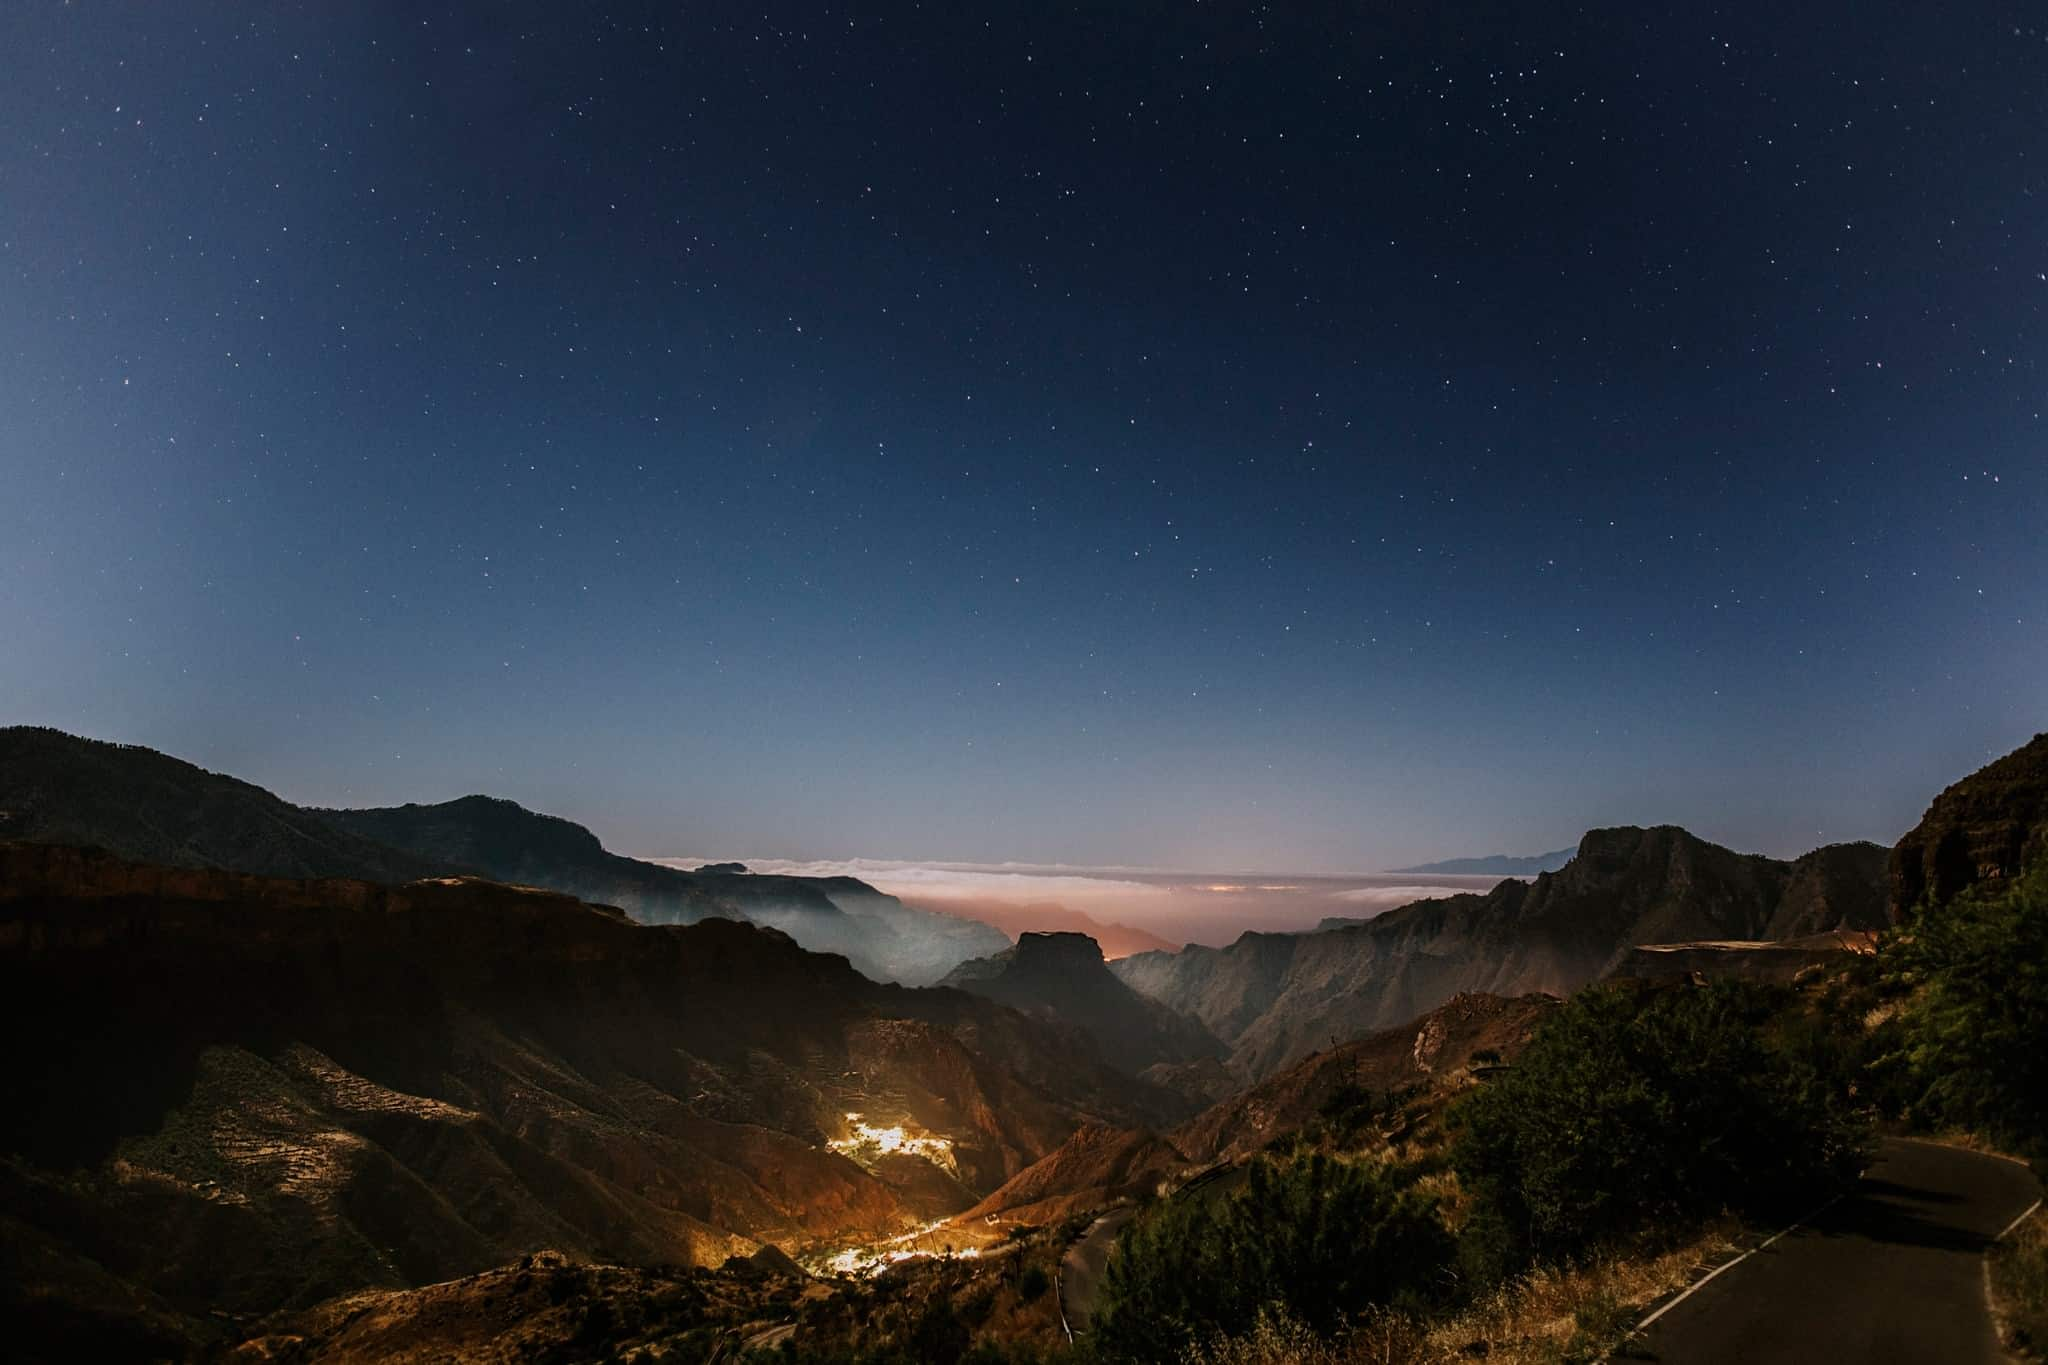 Looking down at night on a city which is located in a valley between mountains